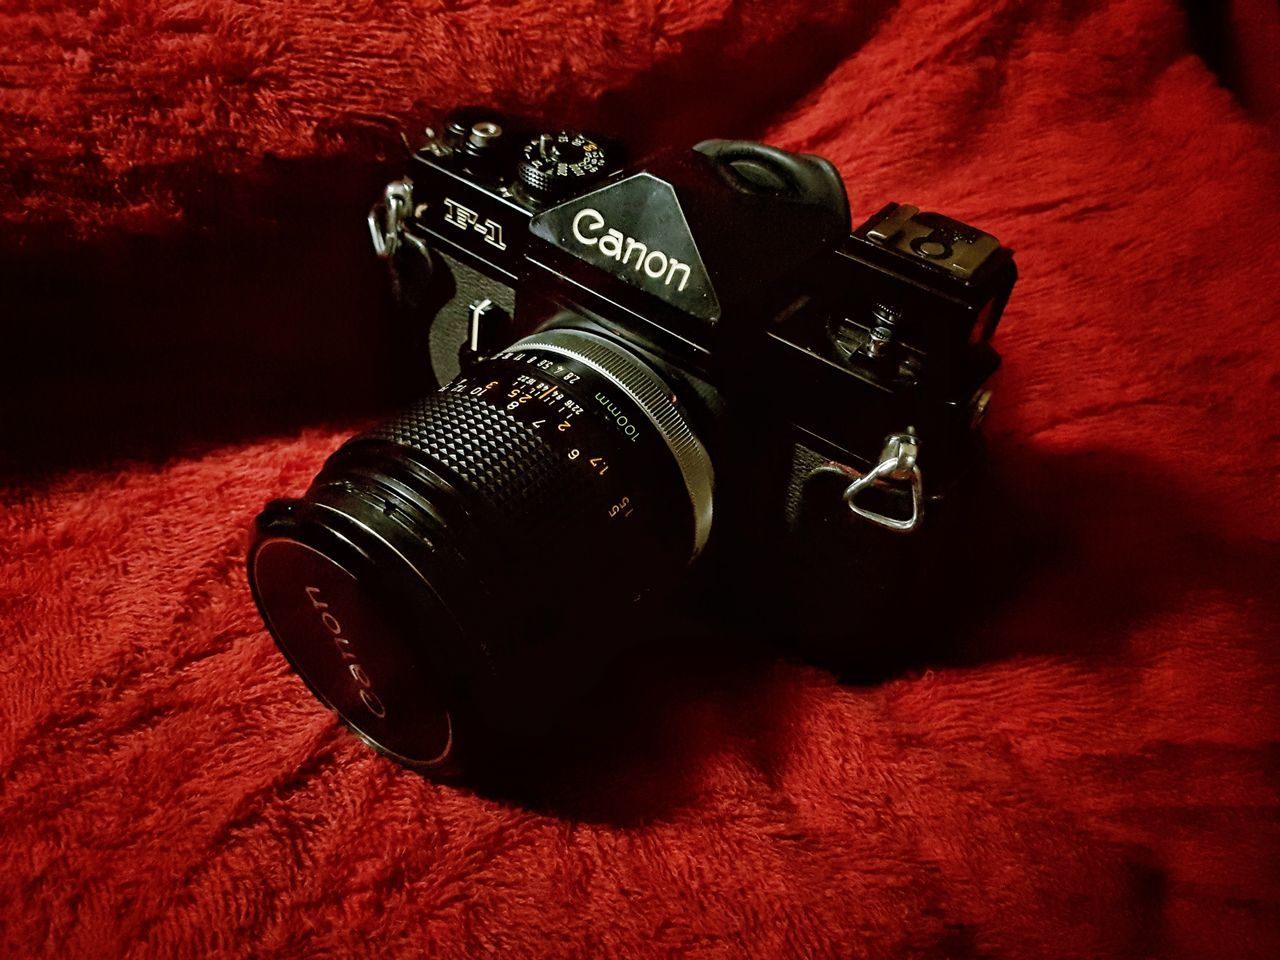 camera - photographic equipment, photography themes, technology, no people, indoors, digital camera, old-fashioned, camera, vintage, table, red, close-up, digital single-lens reflex camera, day